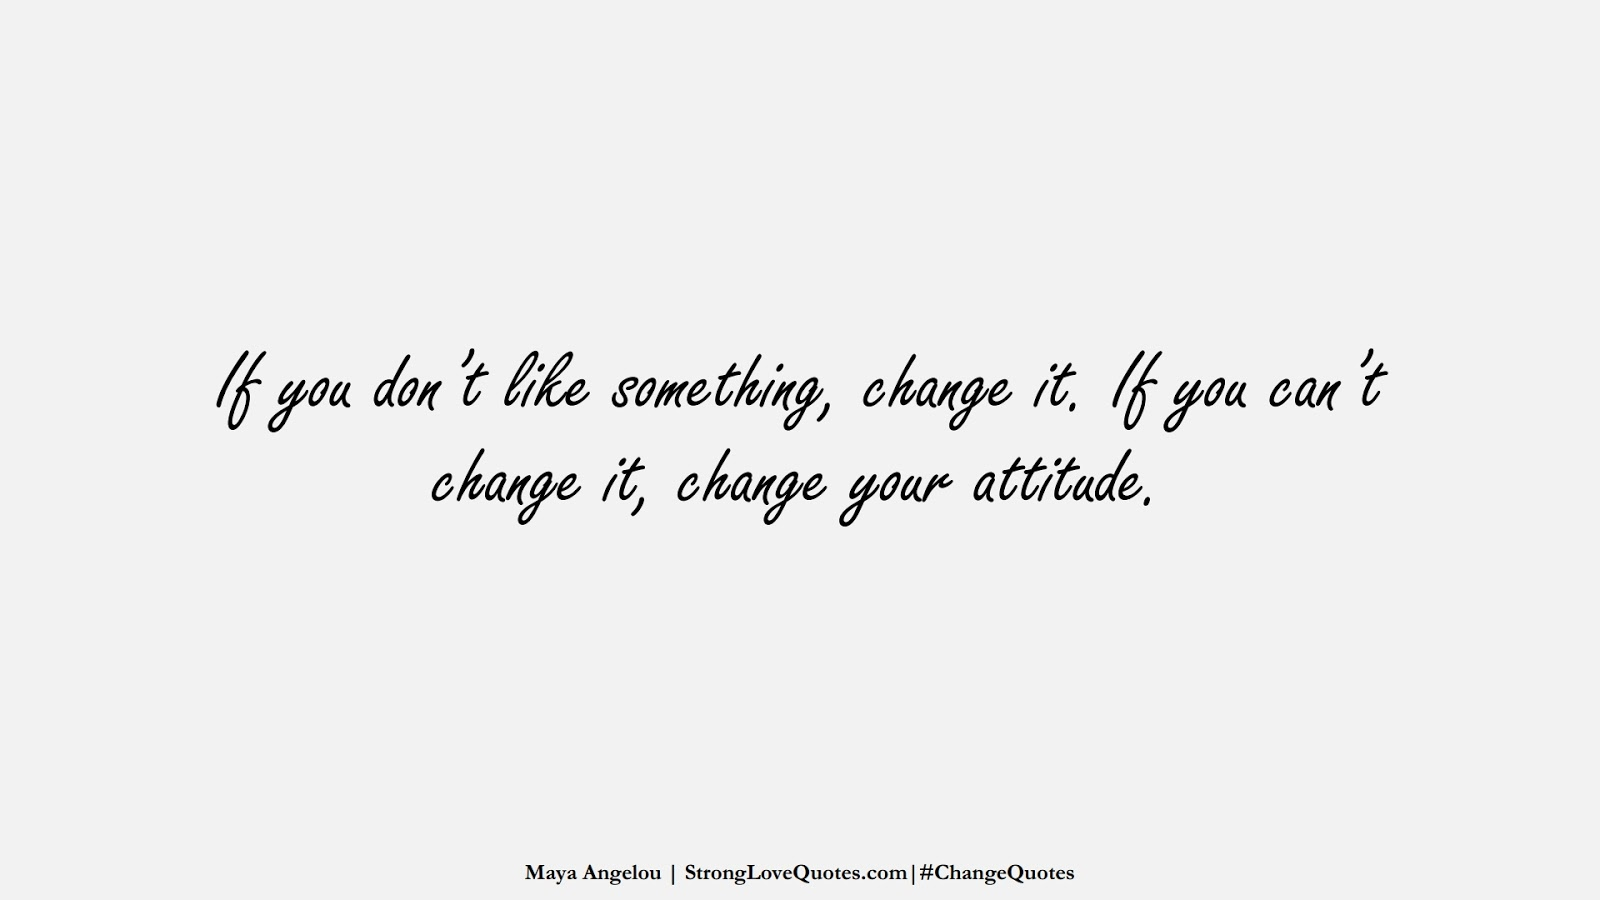 If you don't like something, change it. If you can't change it, change your attitude. (Maya Angelou);  #ChangeQuotes